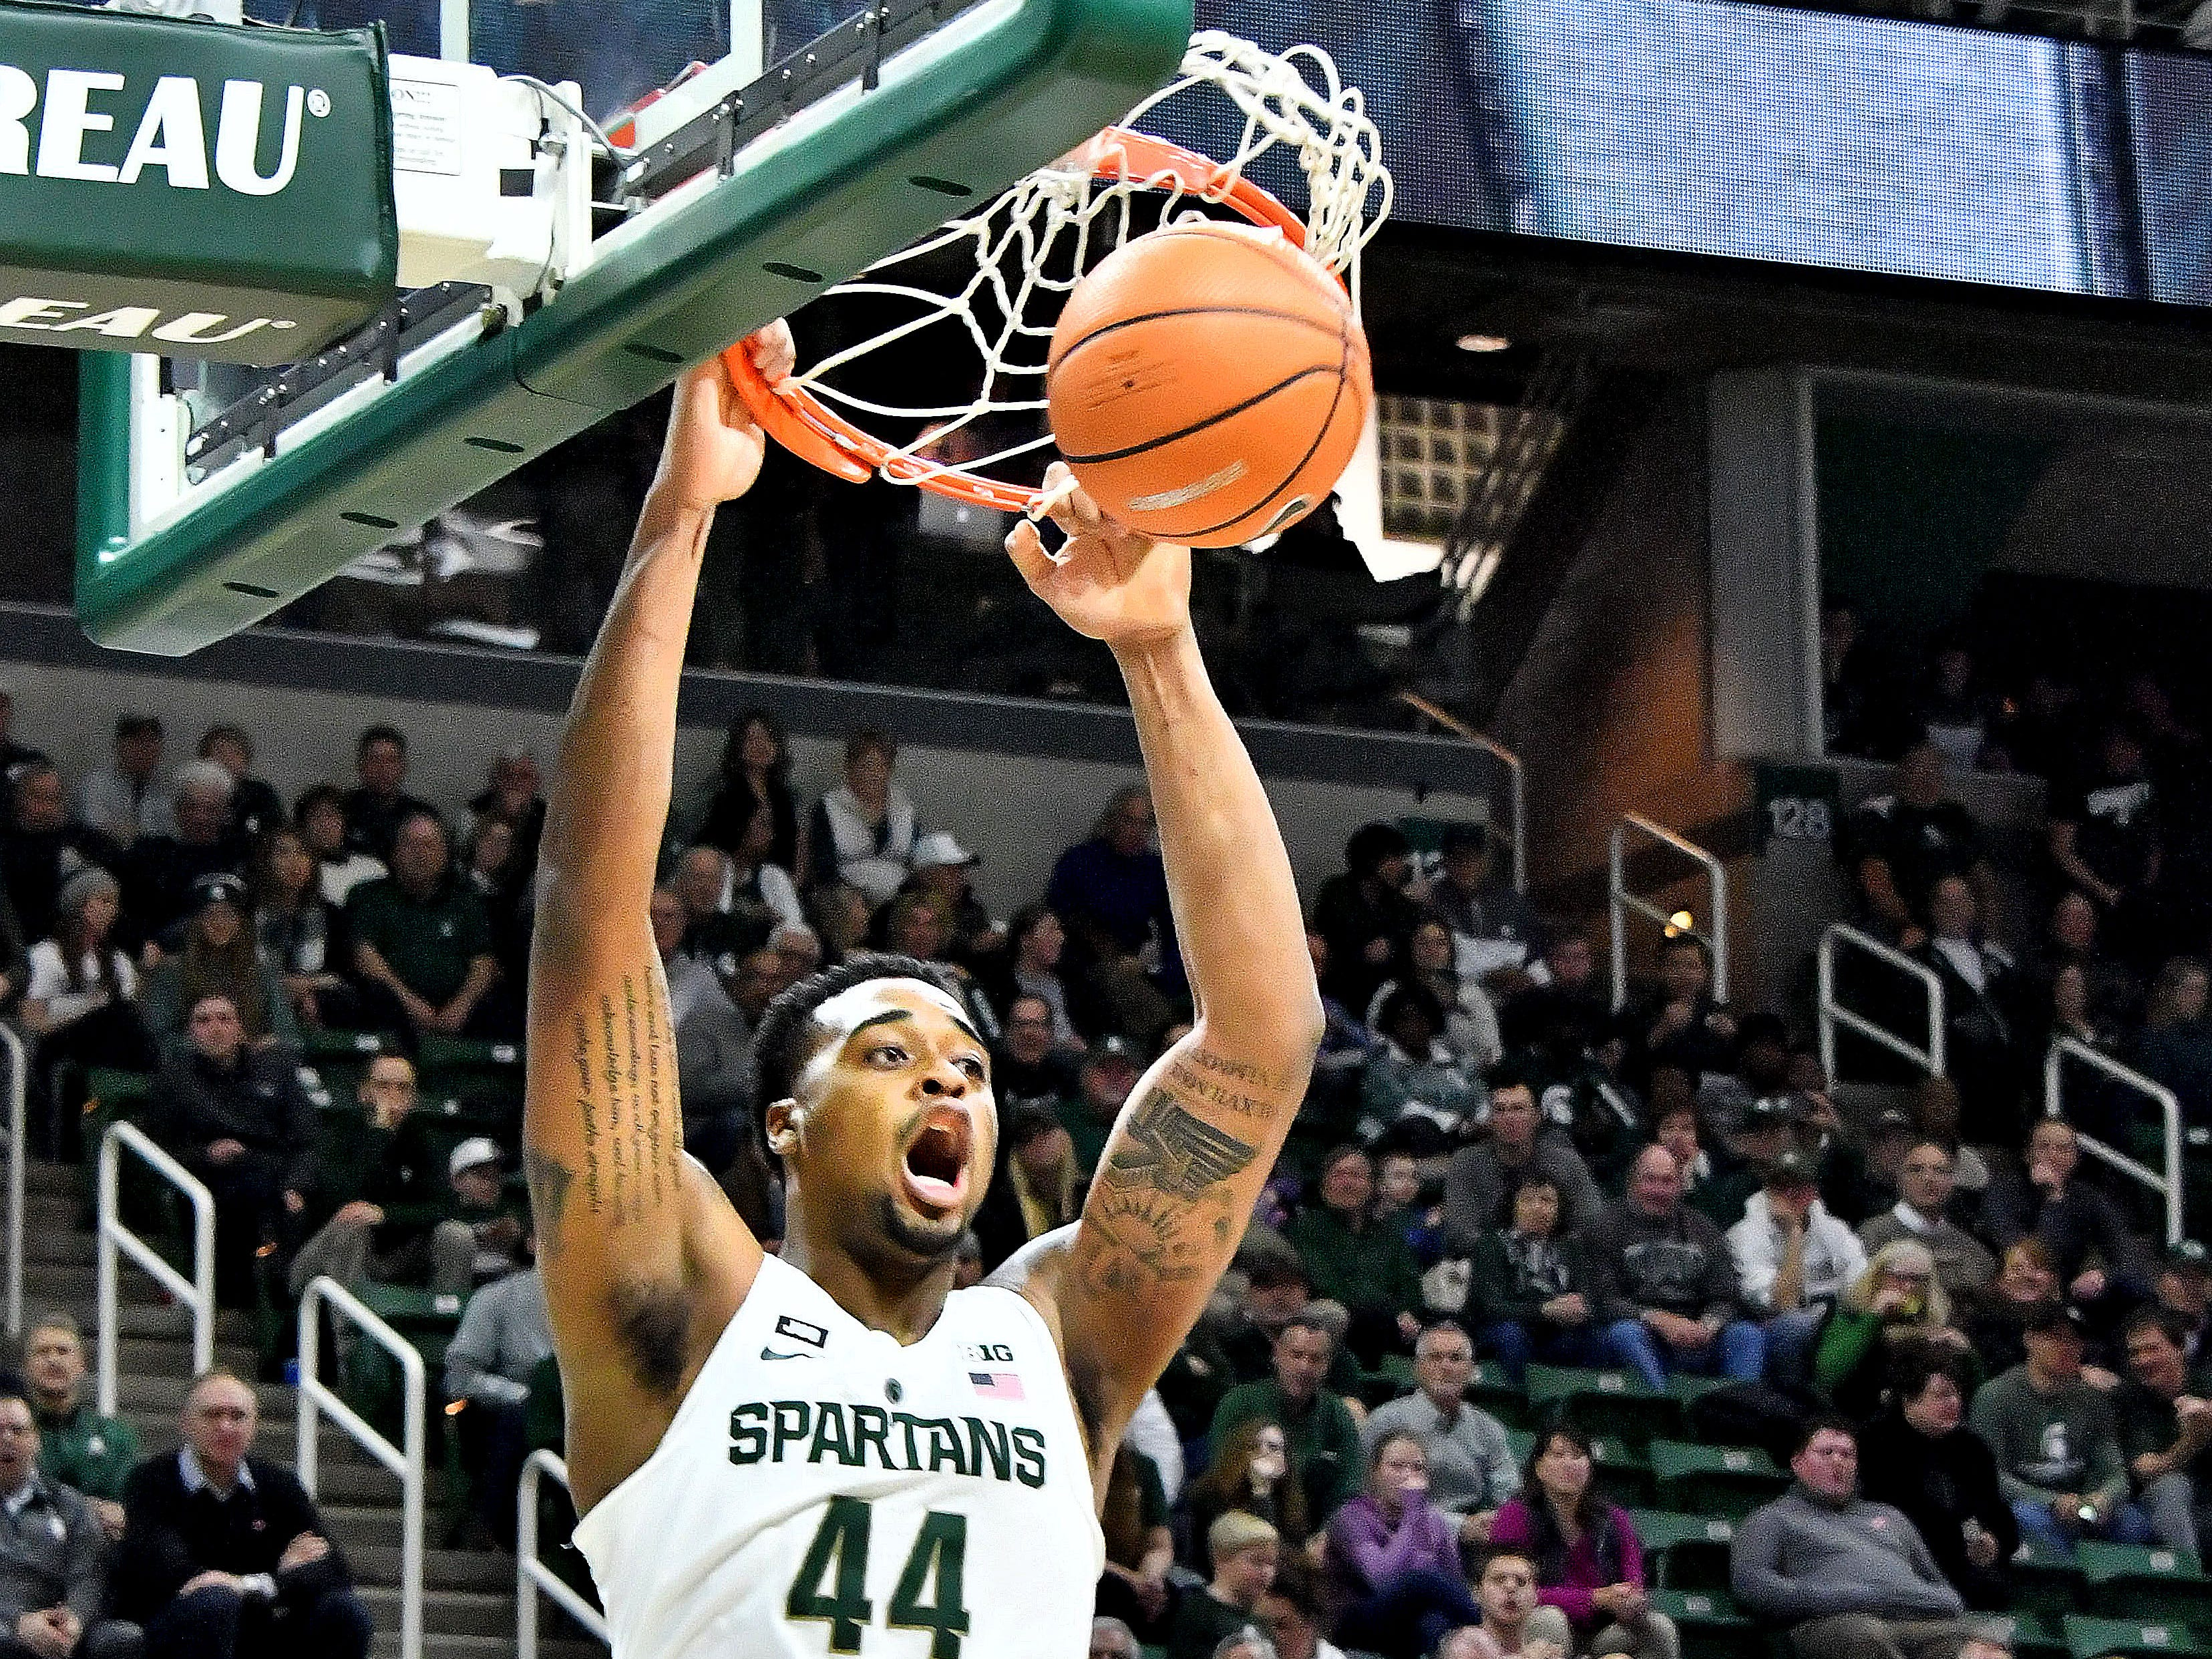 Nick Ward shouts as he dunks the ball over a Rutgers player on January 10, 2018, at Breslin arena in East Lansing. Michigan State won the Big Ten regular season championship, but lost to Syracuse in the second round of the NCAA tournament.